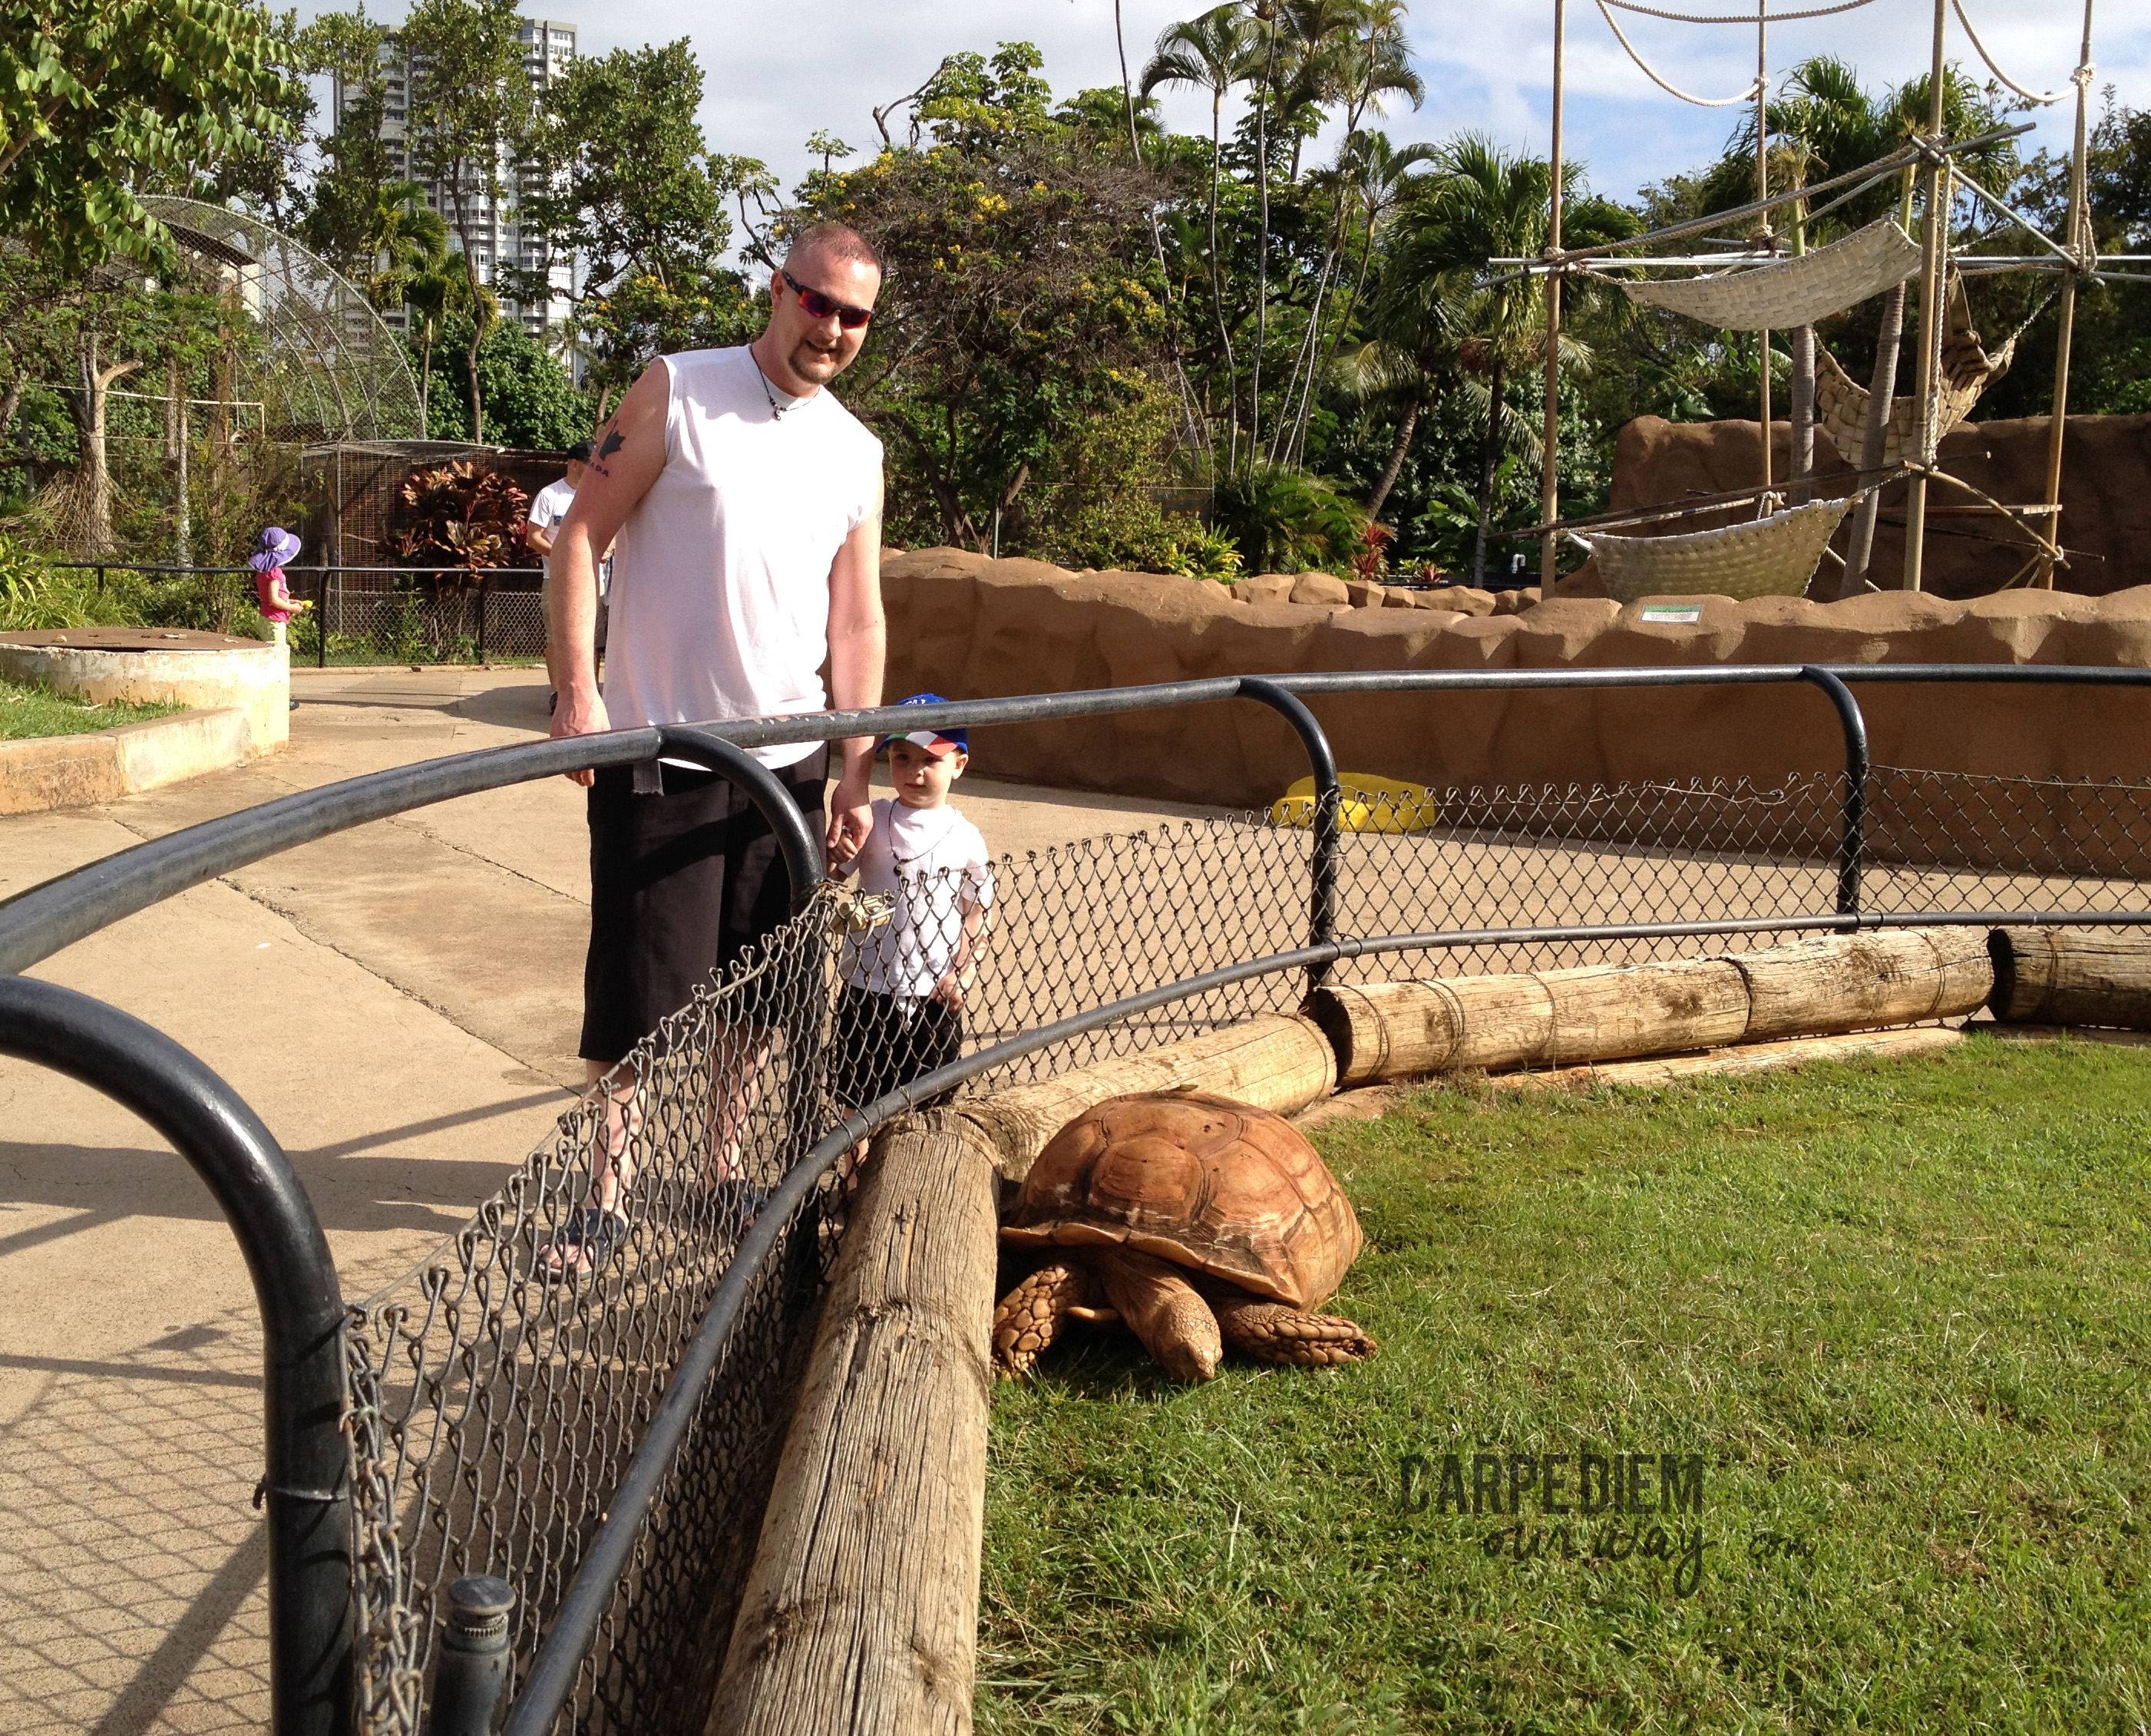 Getting up close at the Honolulu Zoo